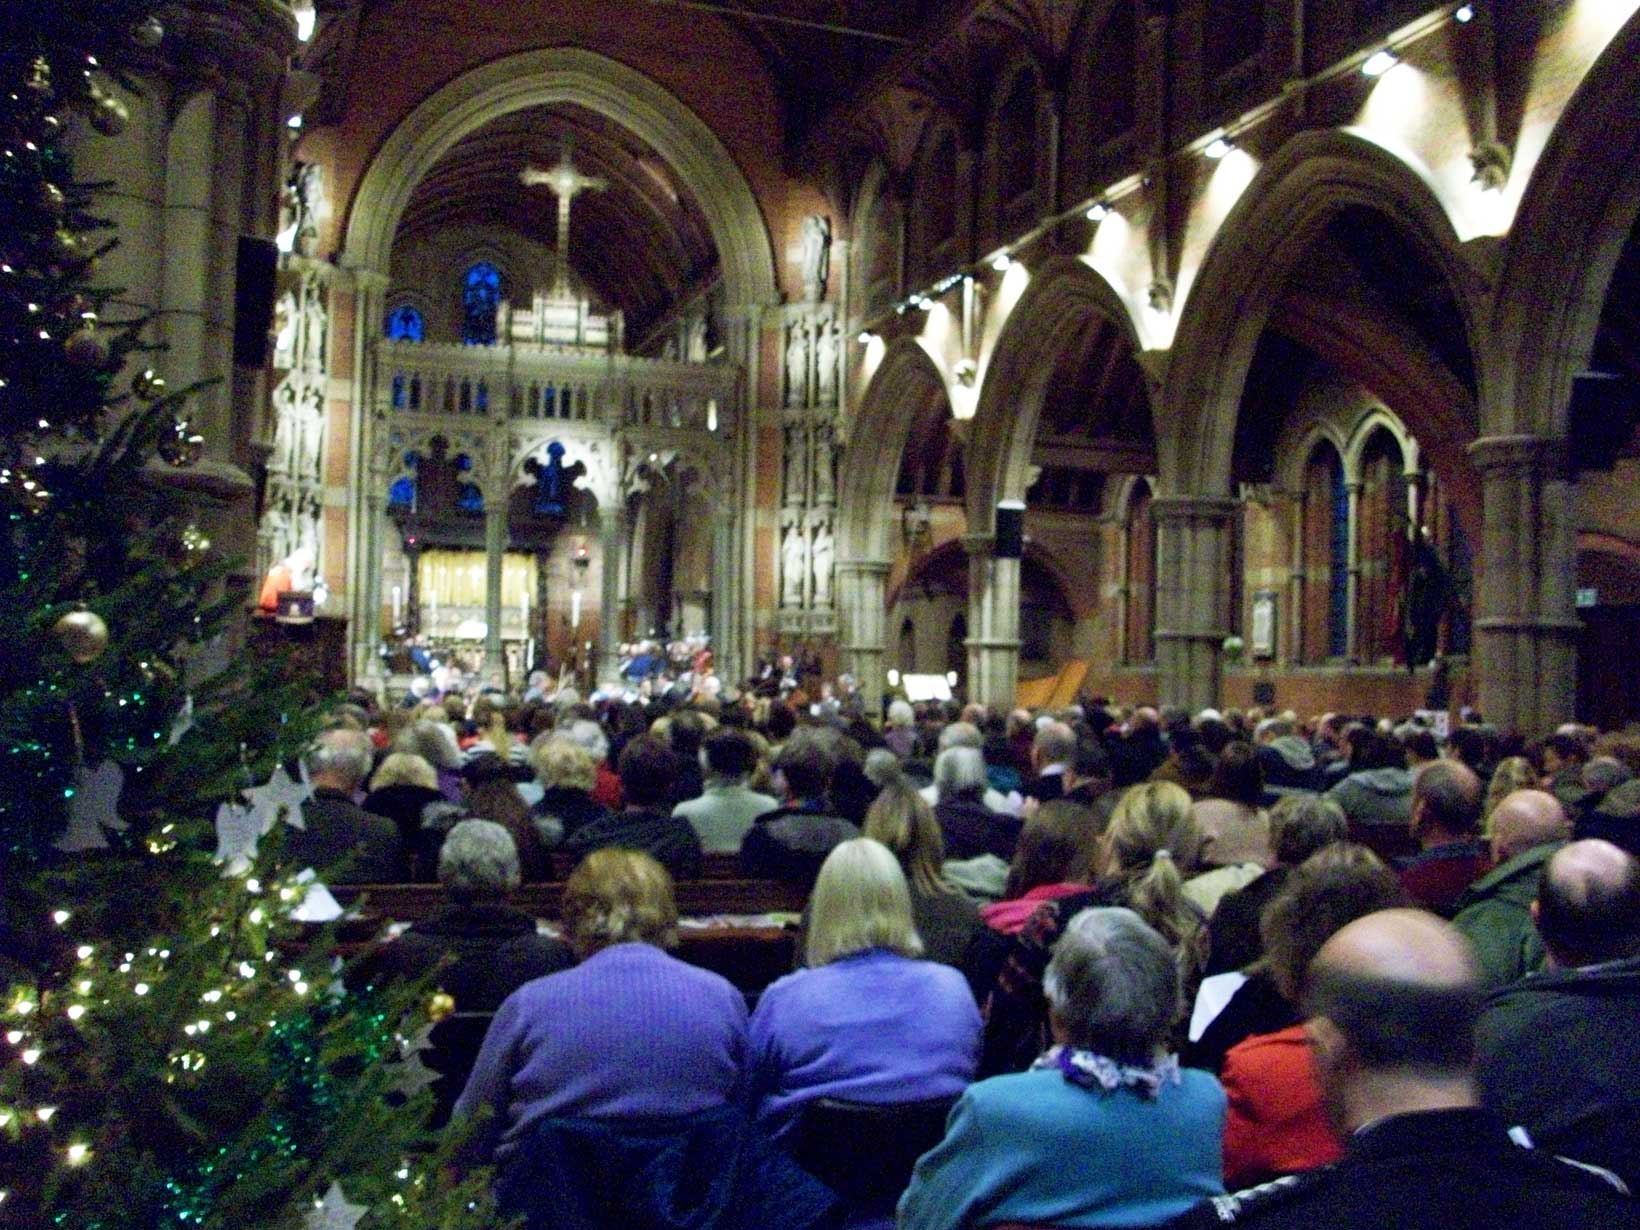 Civic Carol Service at St. John's, Sidcup